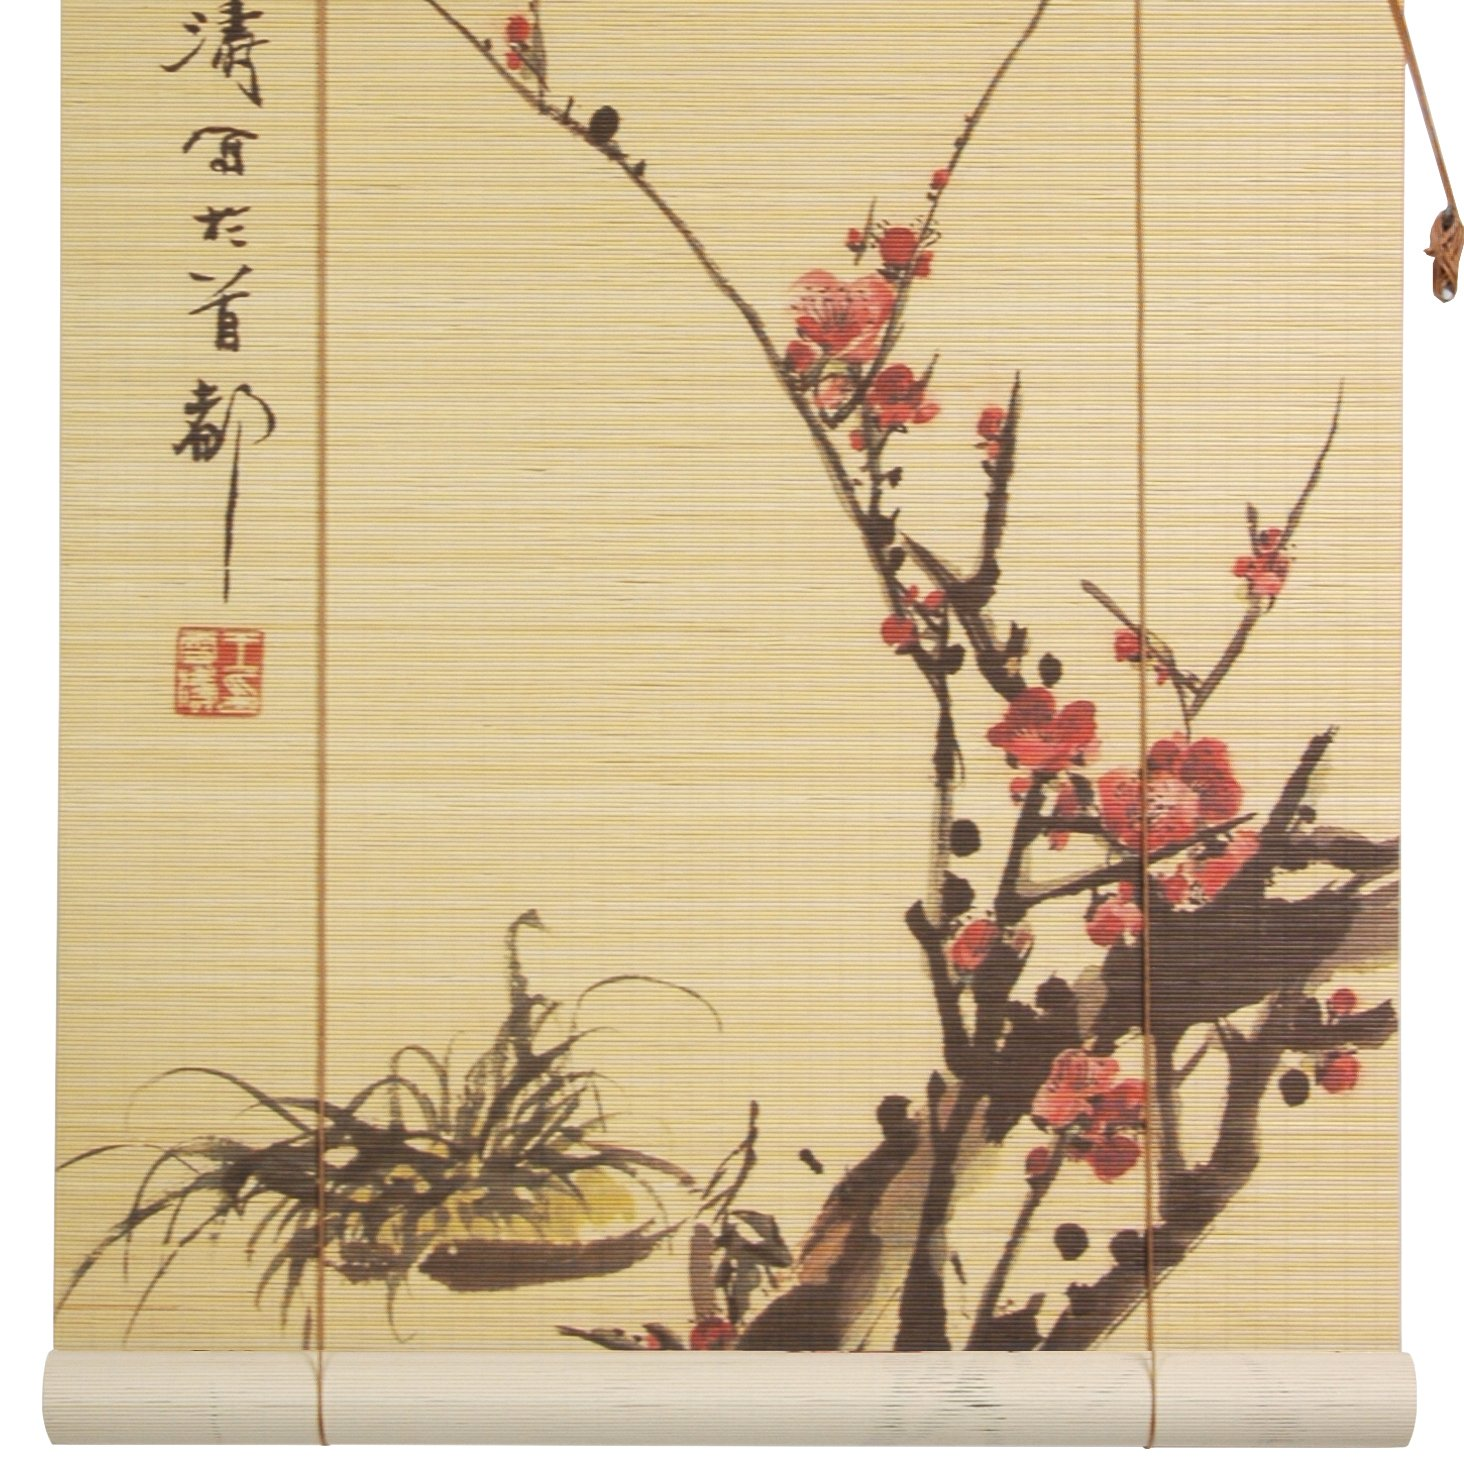 Oriental Furniture Sakura Blossom Bamboo Window Blinds, 36-Inch Wide WTPF09-02-36